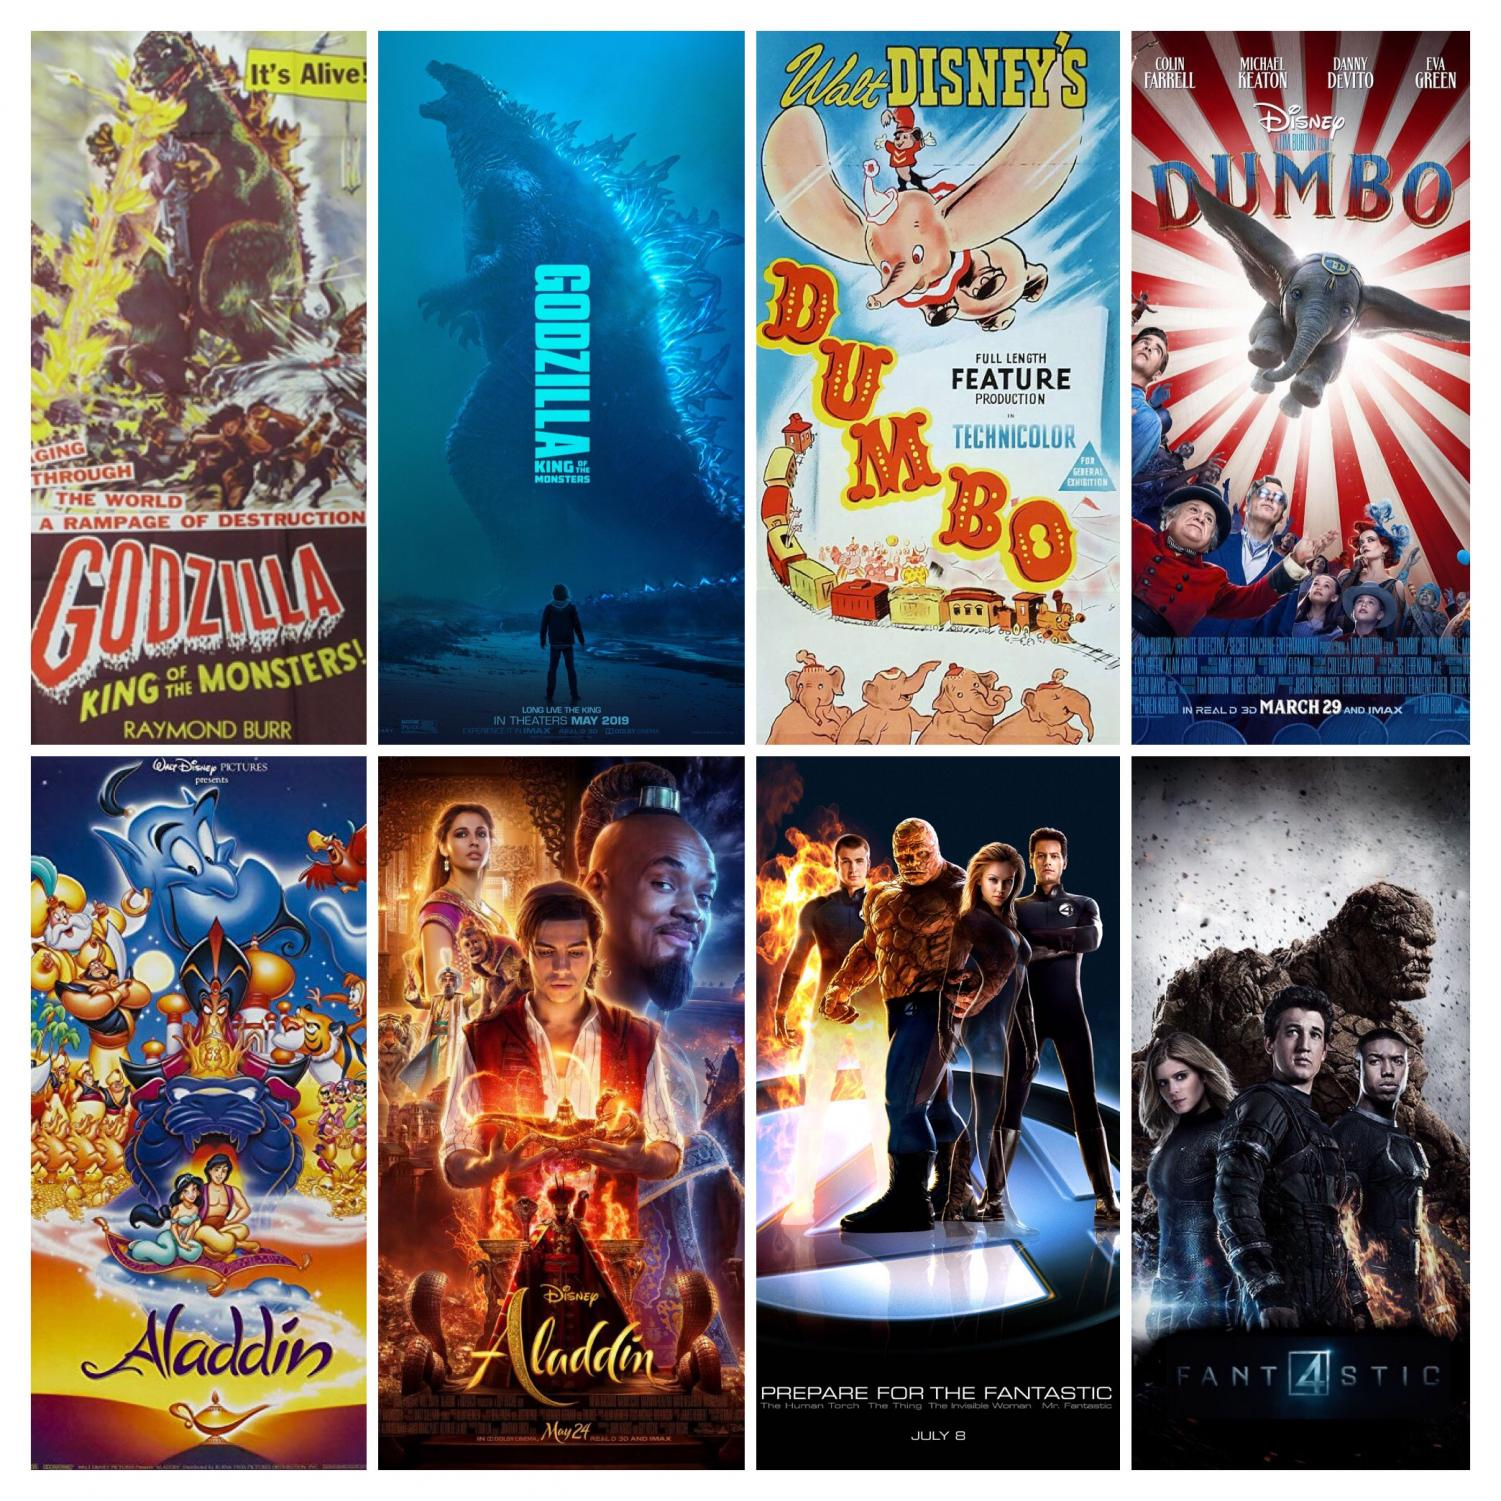 The reboots and remakes of Hollywood.  Throughout the past couple years, Hollywood has produced more film remakes and reboots that cannot be compared to the original classics. Films such as Godzilla, Dumbo, Aladdin, and the Fantastic Four have been remade and changed into more modernized movies that fail to capture audiences.